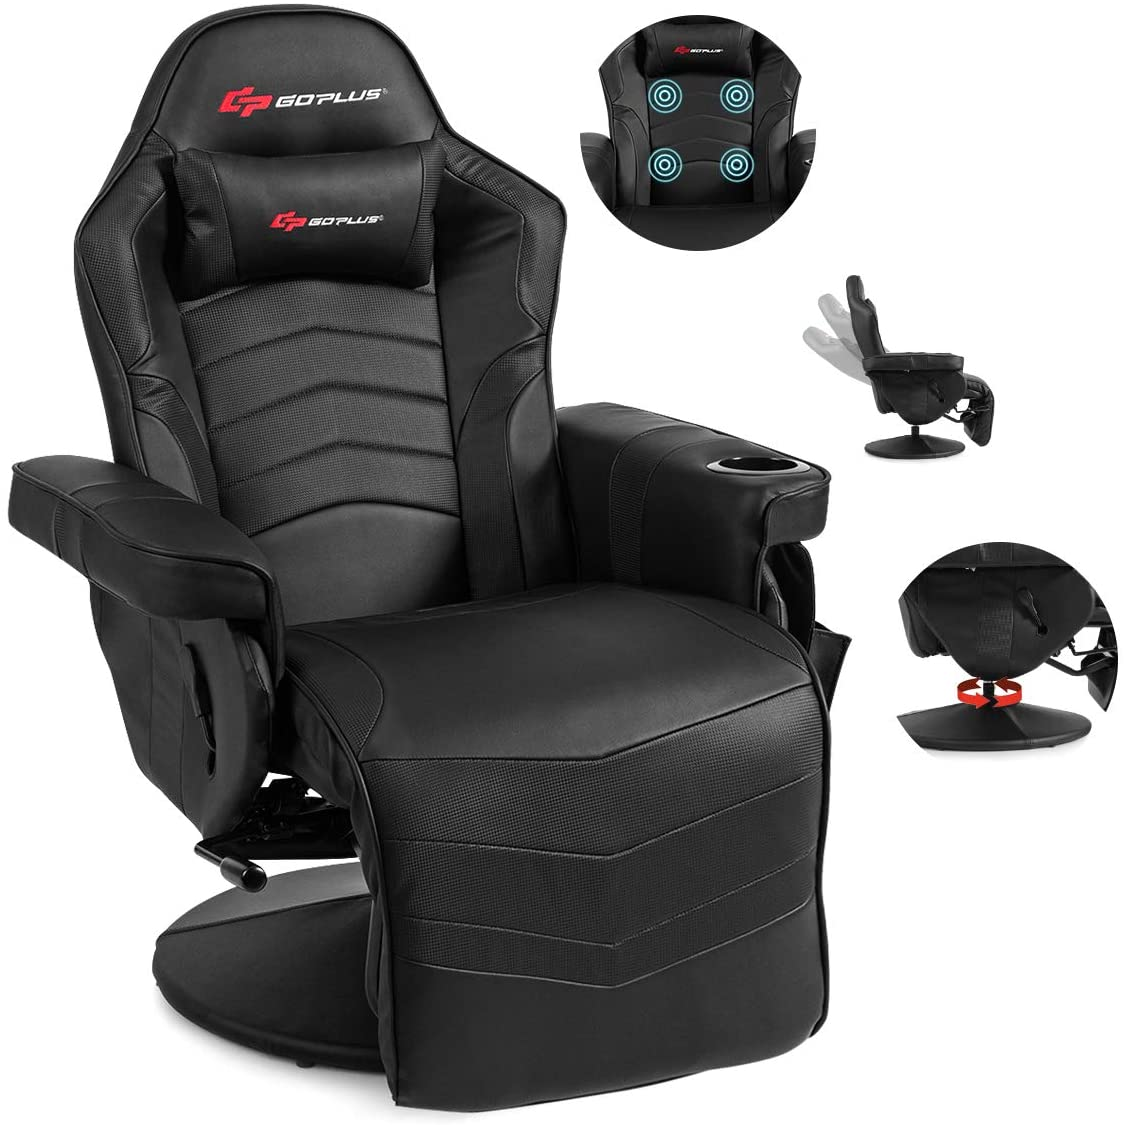 POWERSTONE Gaming Recliner Massage Sofa Ergonomic PU Leather Gaming Chair with Footrest Cup Holder